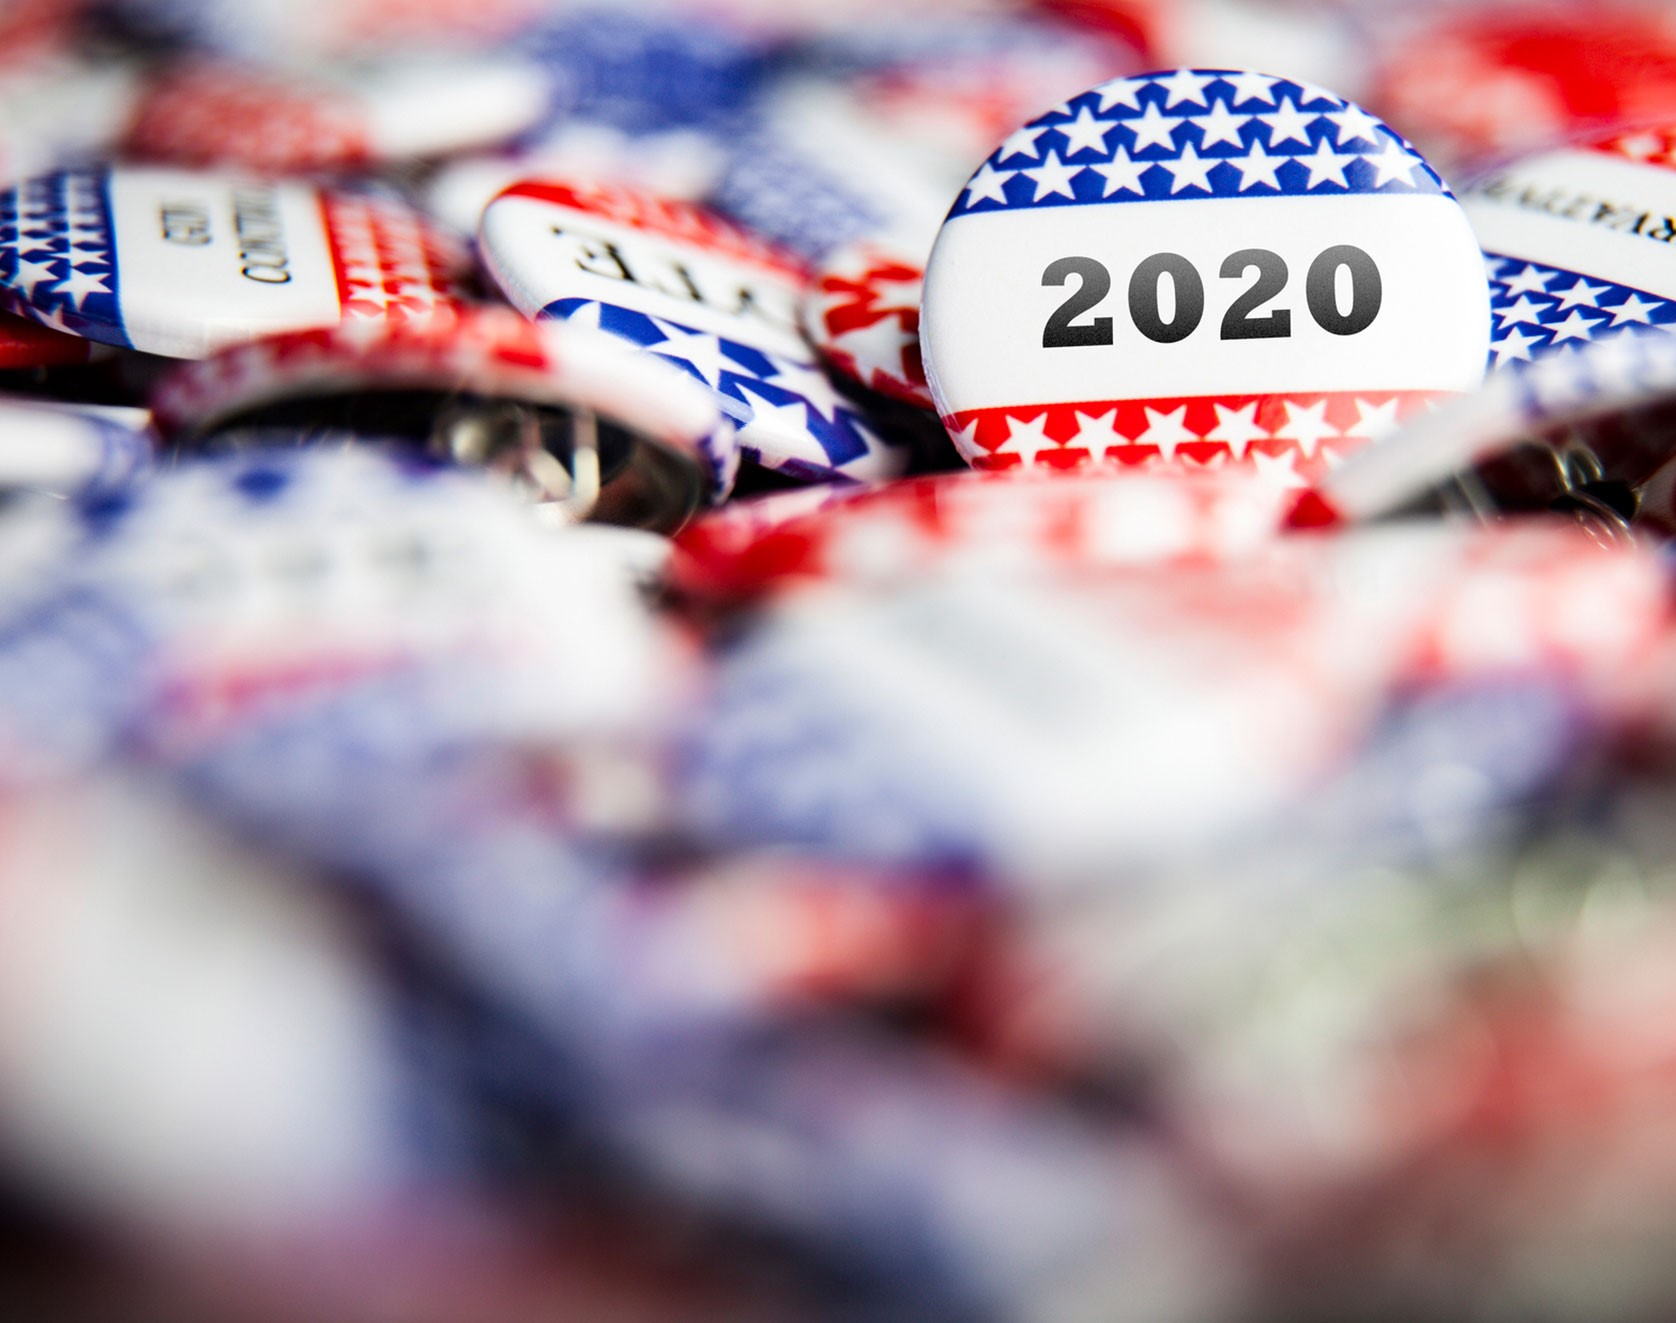 US Election 2020 buttons